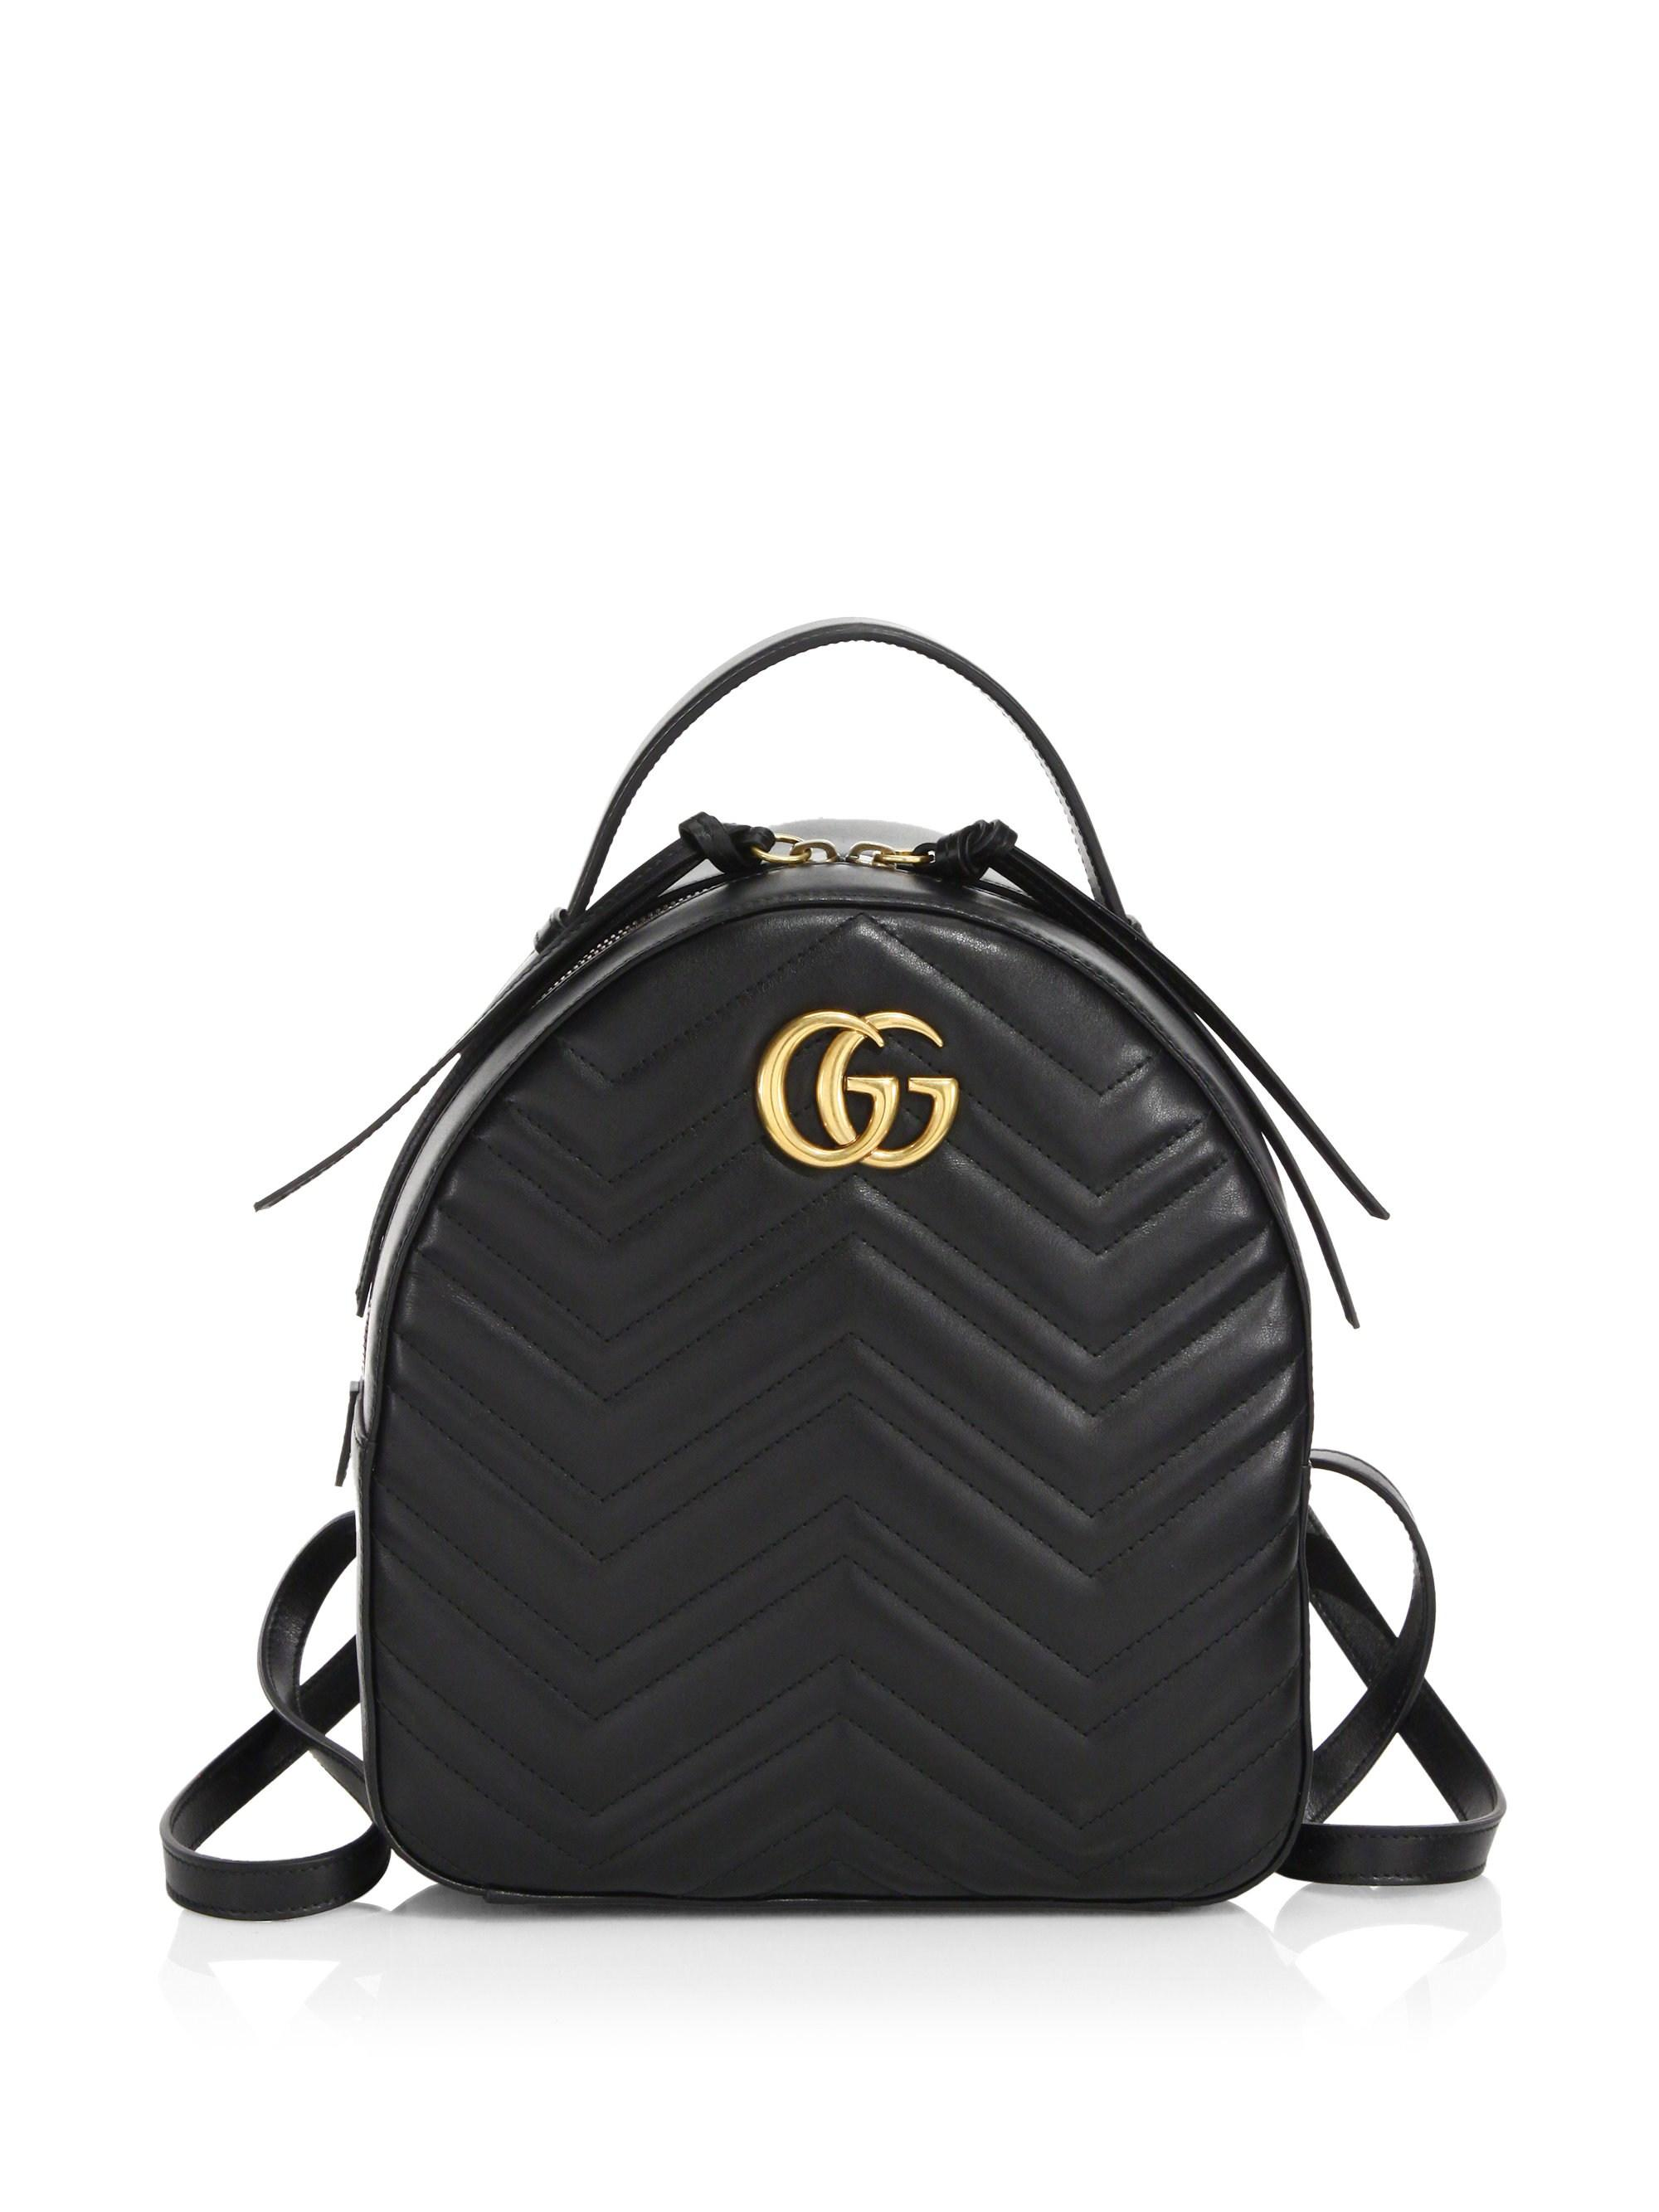 new items best deals on brand quality GG Marmont Chevron Quilted Leather Mini Backpack